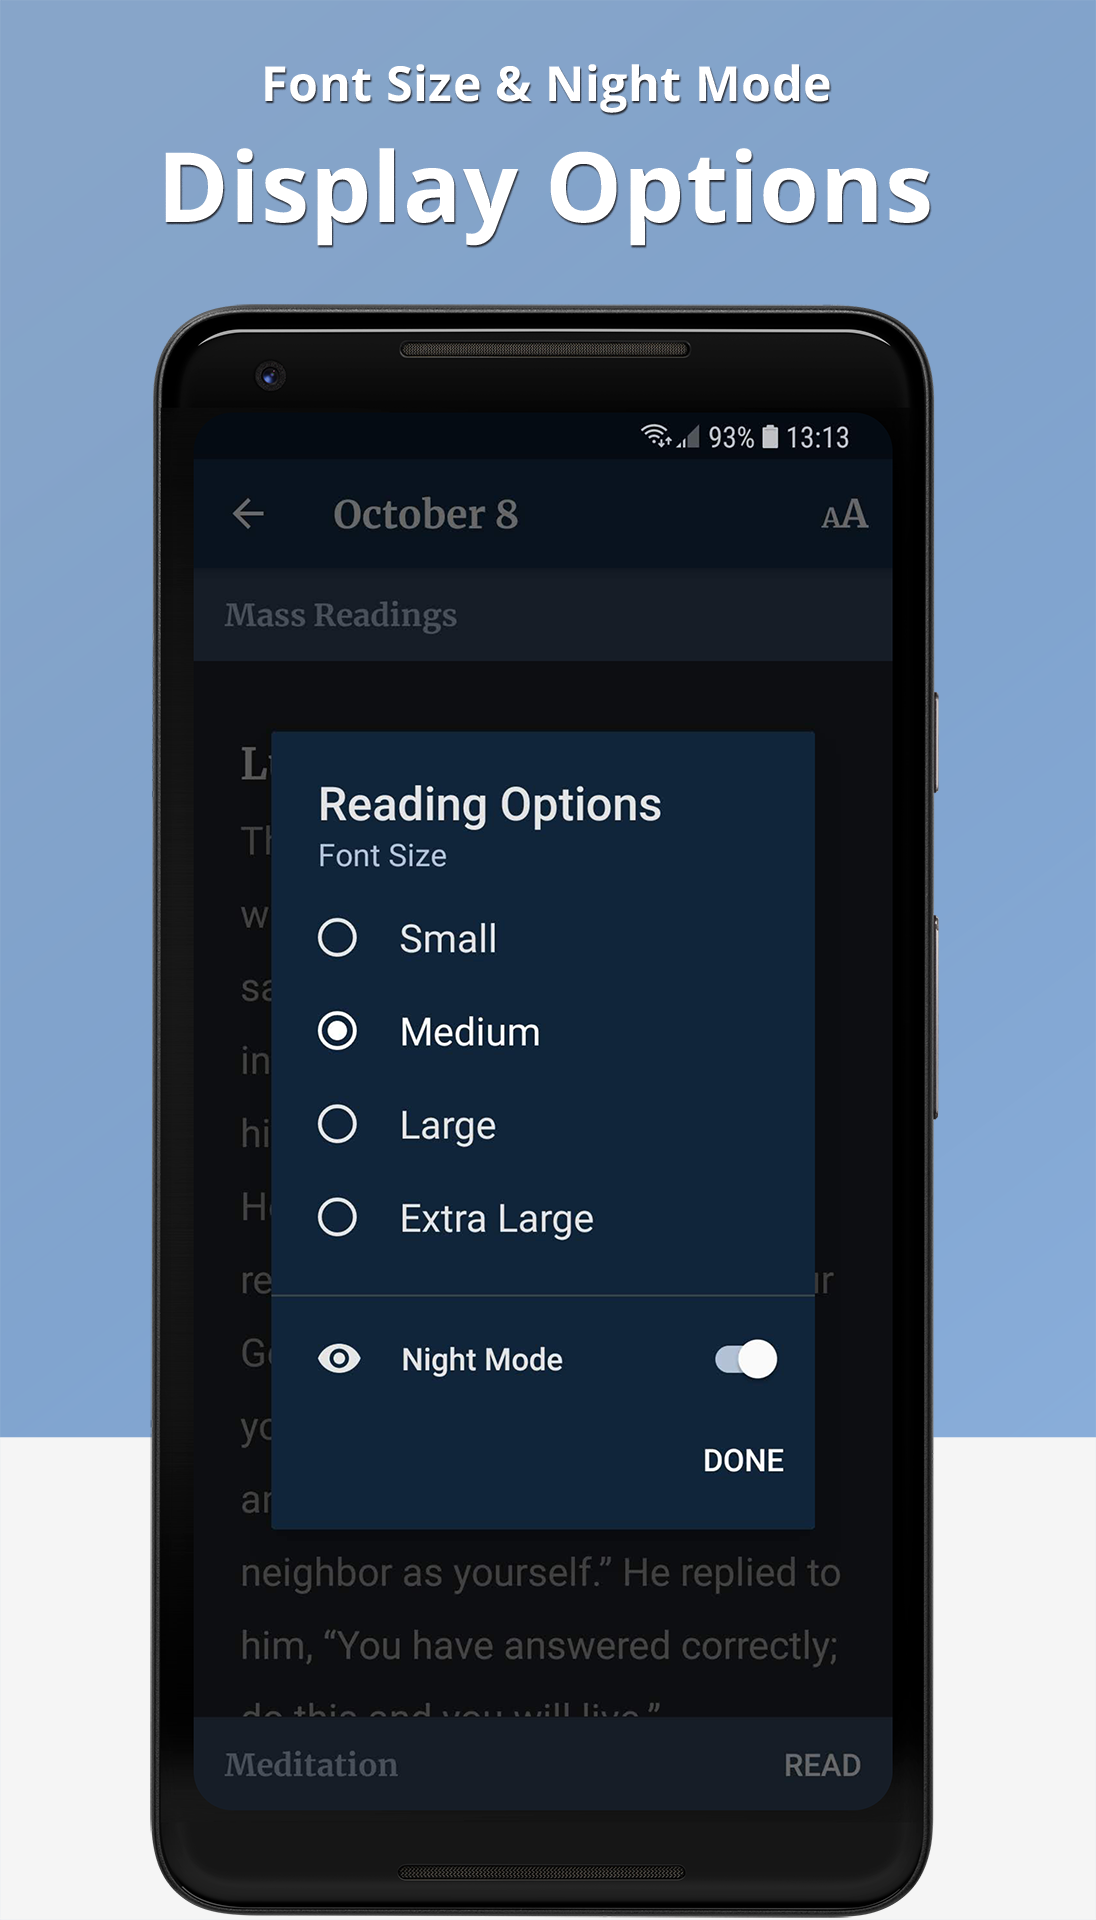 The Word Among Us Android App - Night Mode